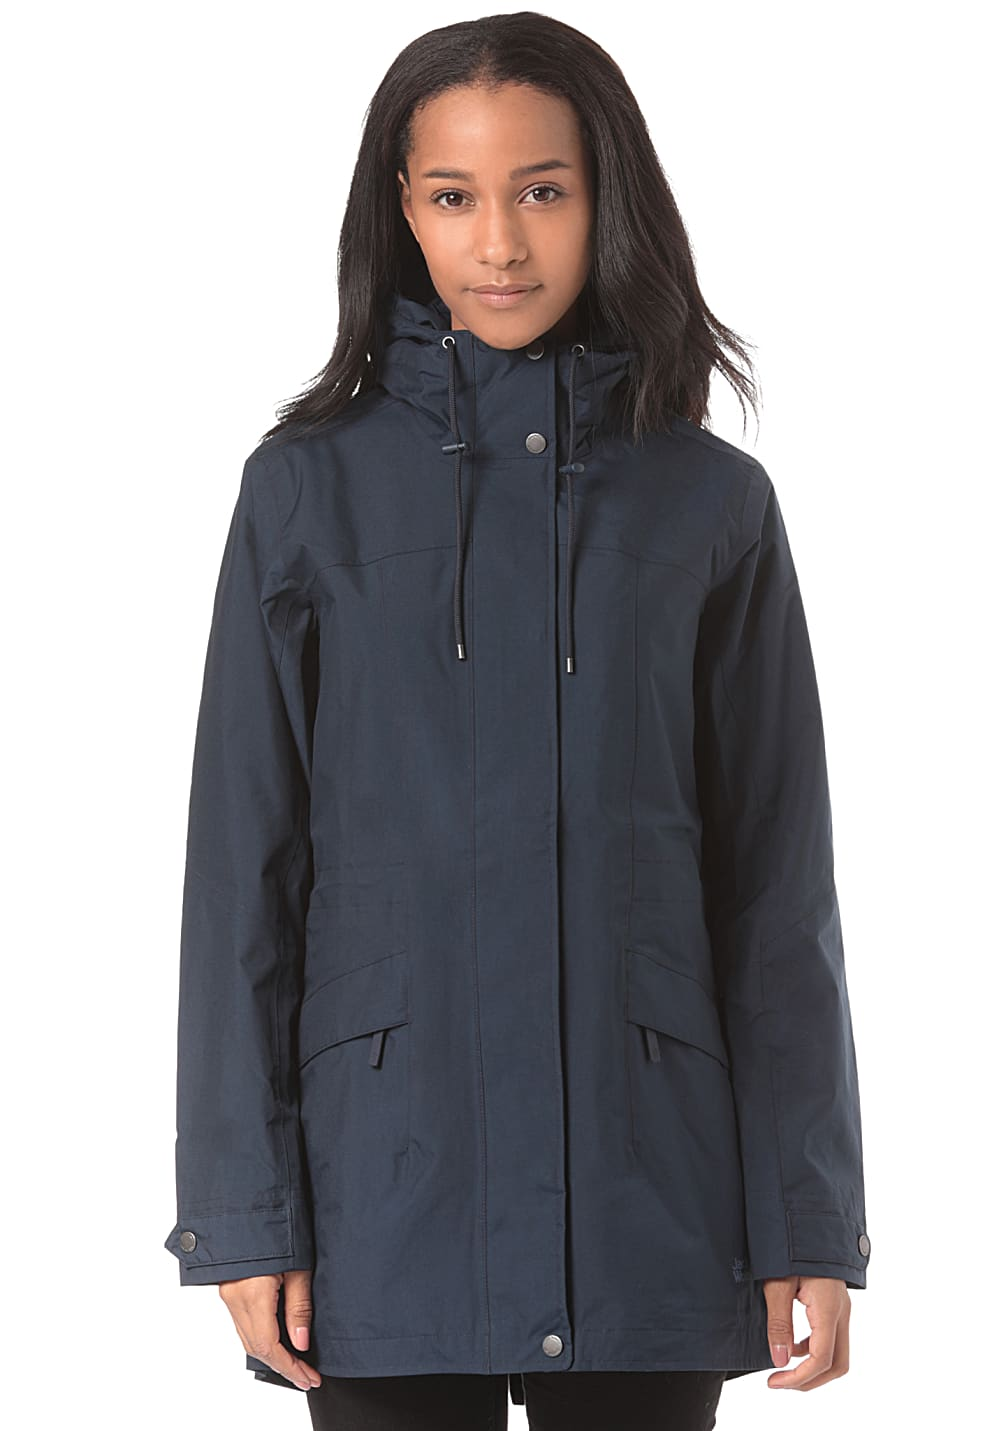 various colors release date arriving Jack Wolfskin Cameia - Outdoor Jacket for Women - Blue